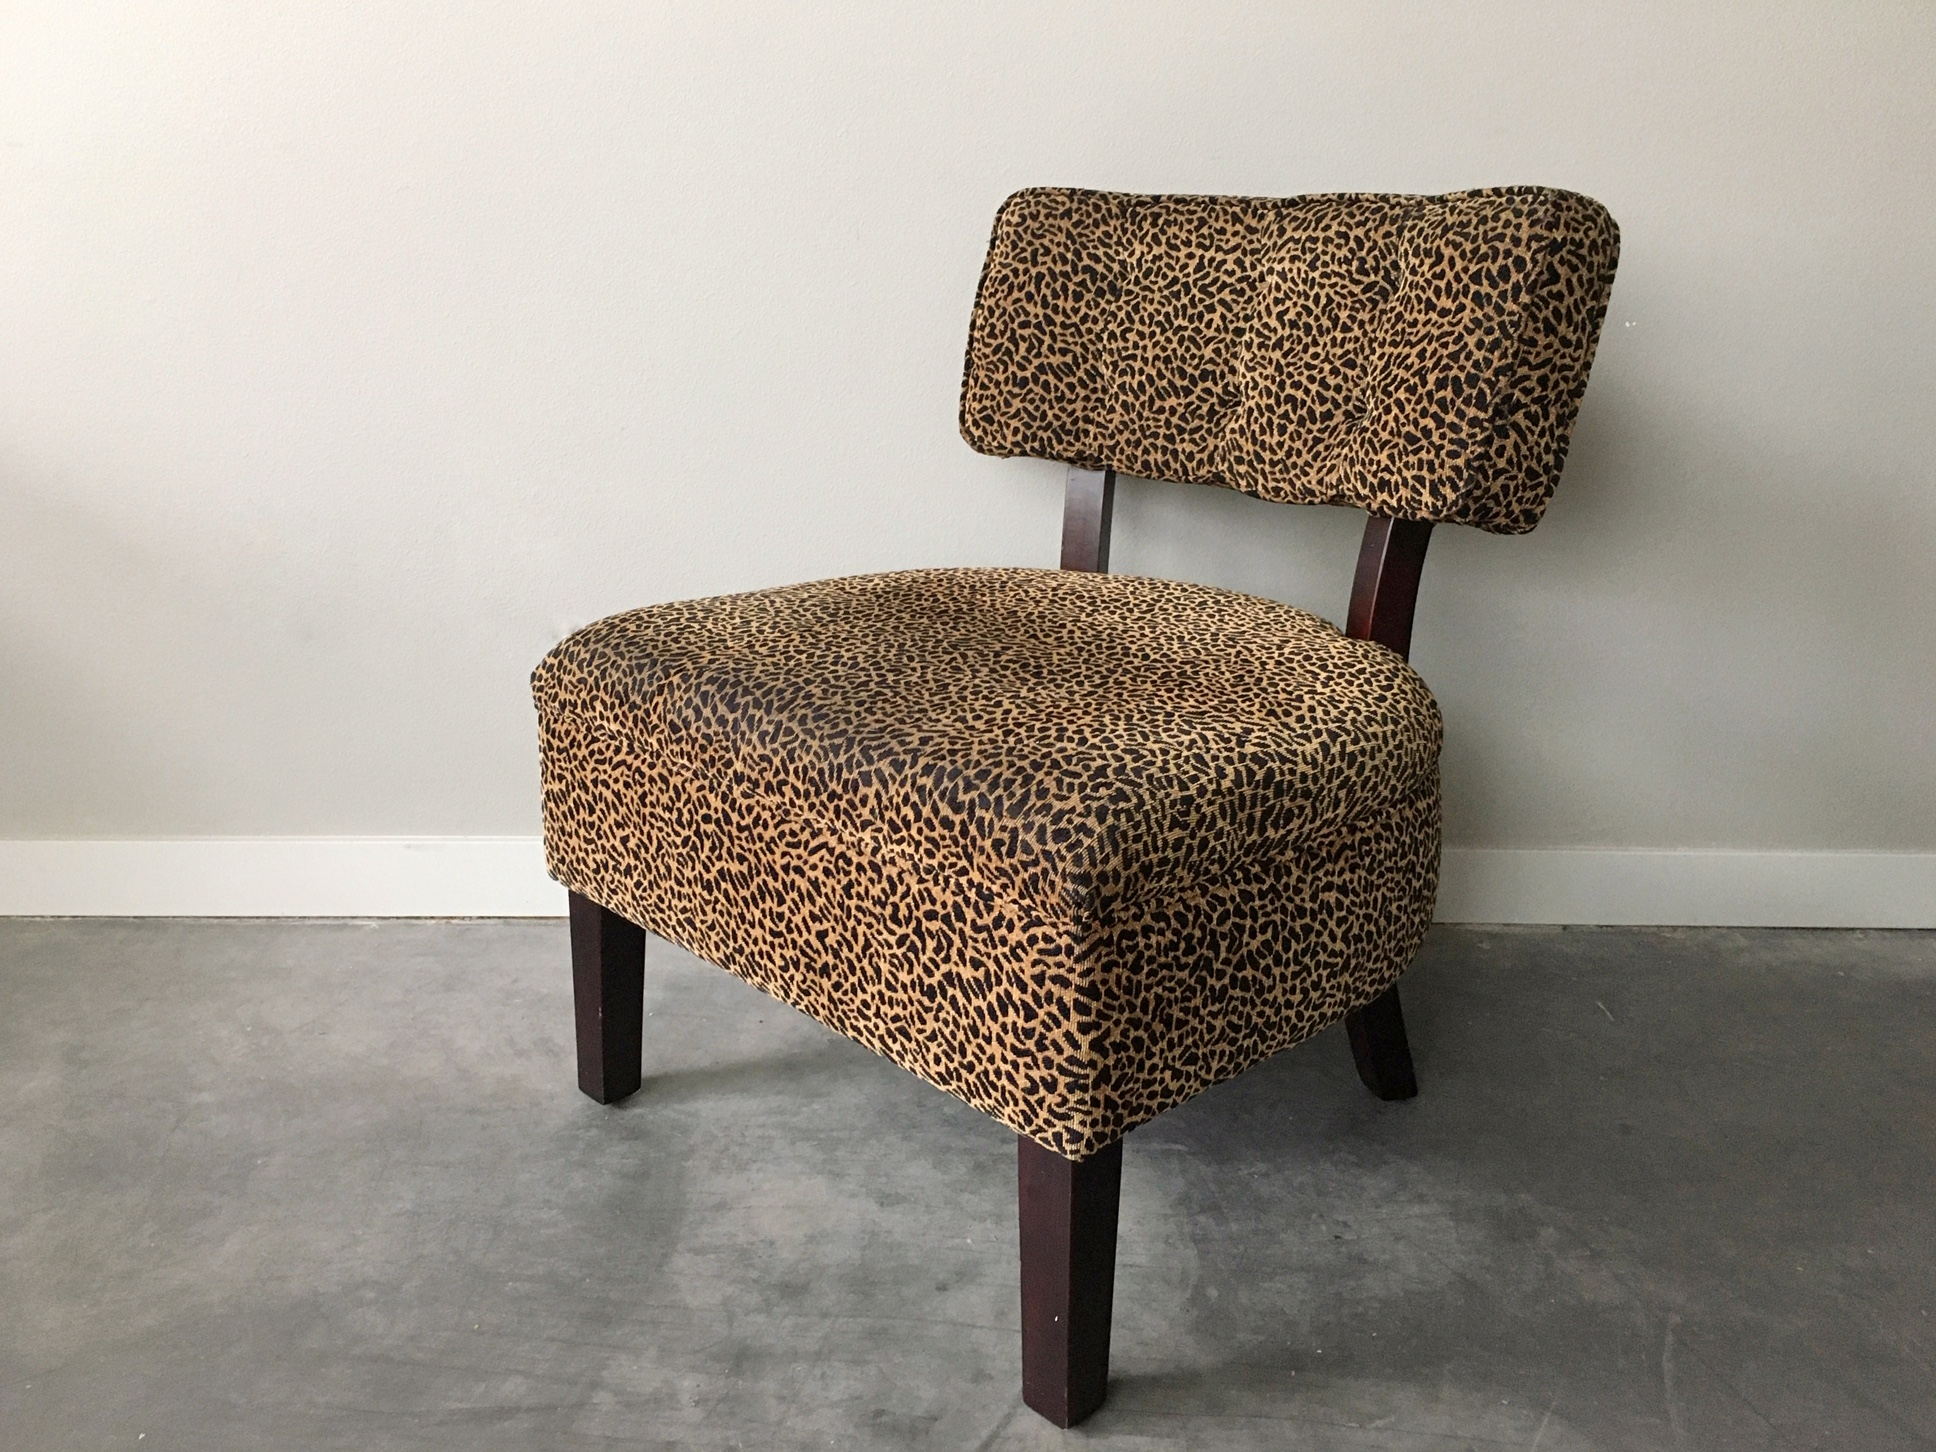 leopard print living room furniture, leopard chair, beauty furniture home, paisley furniture home, leopard reclining sofa, leopard print furniture and accessories, zebra furniture home, leopard print retro furniture, animal print for the home, beach furniture home, on leopard print furniture home